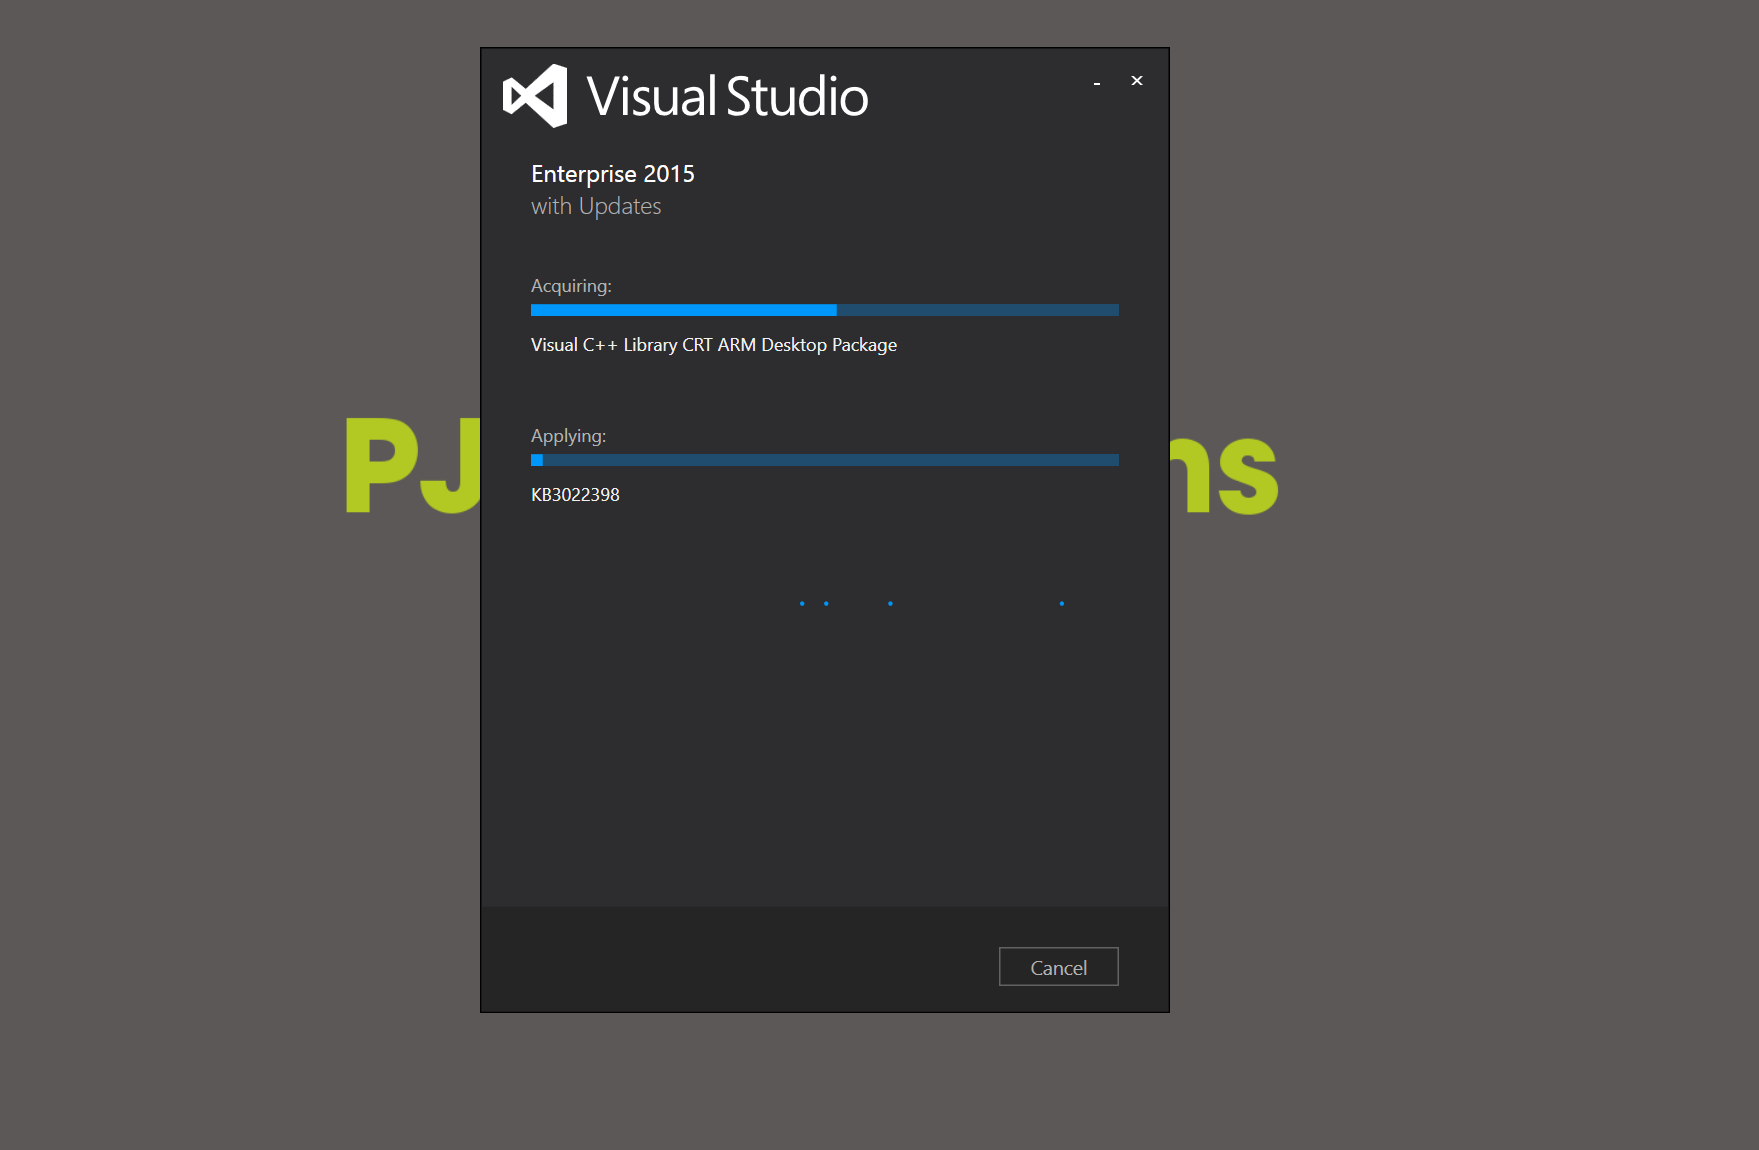 10 - Install Visual Studio